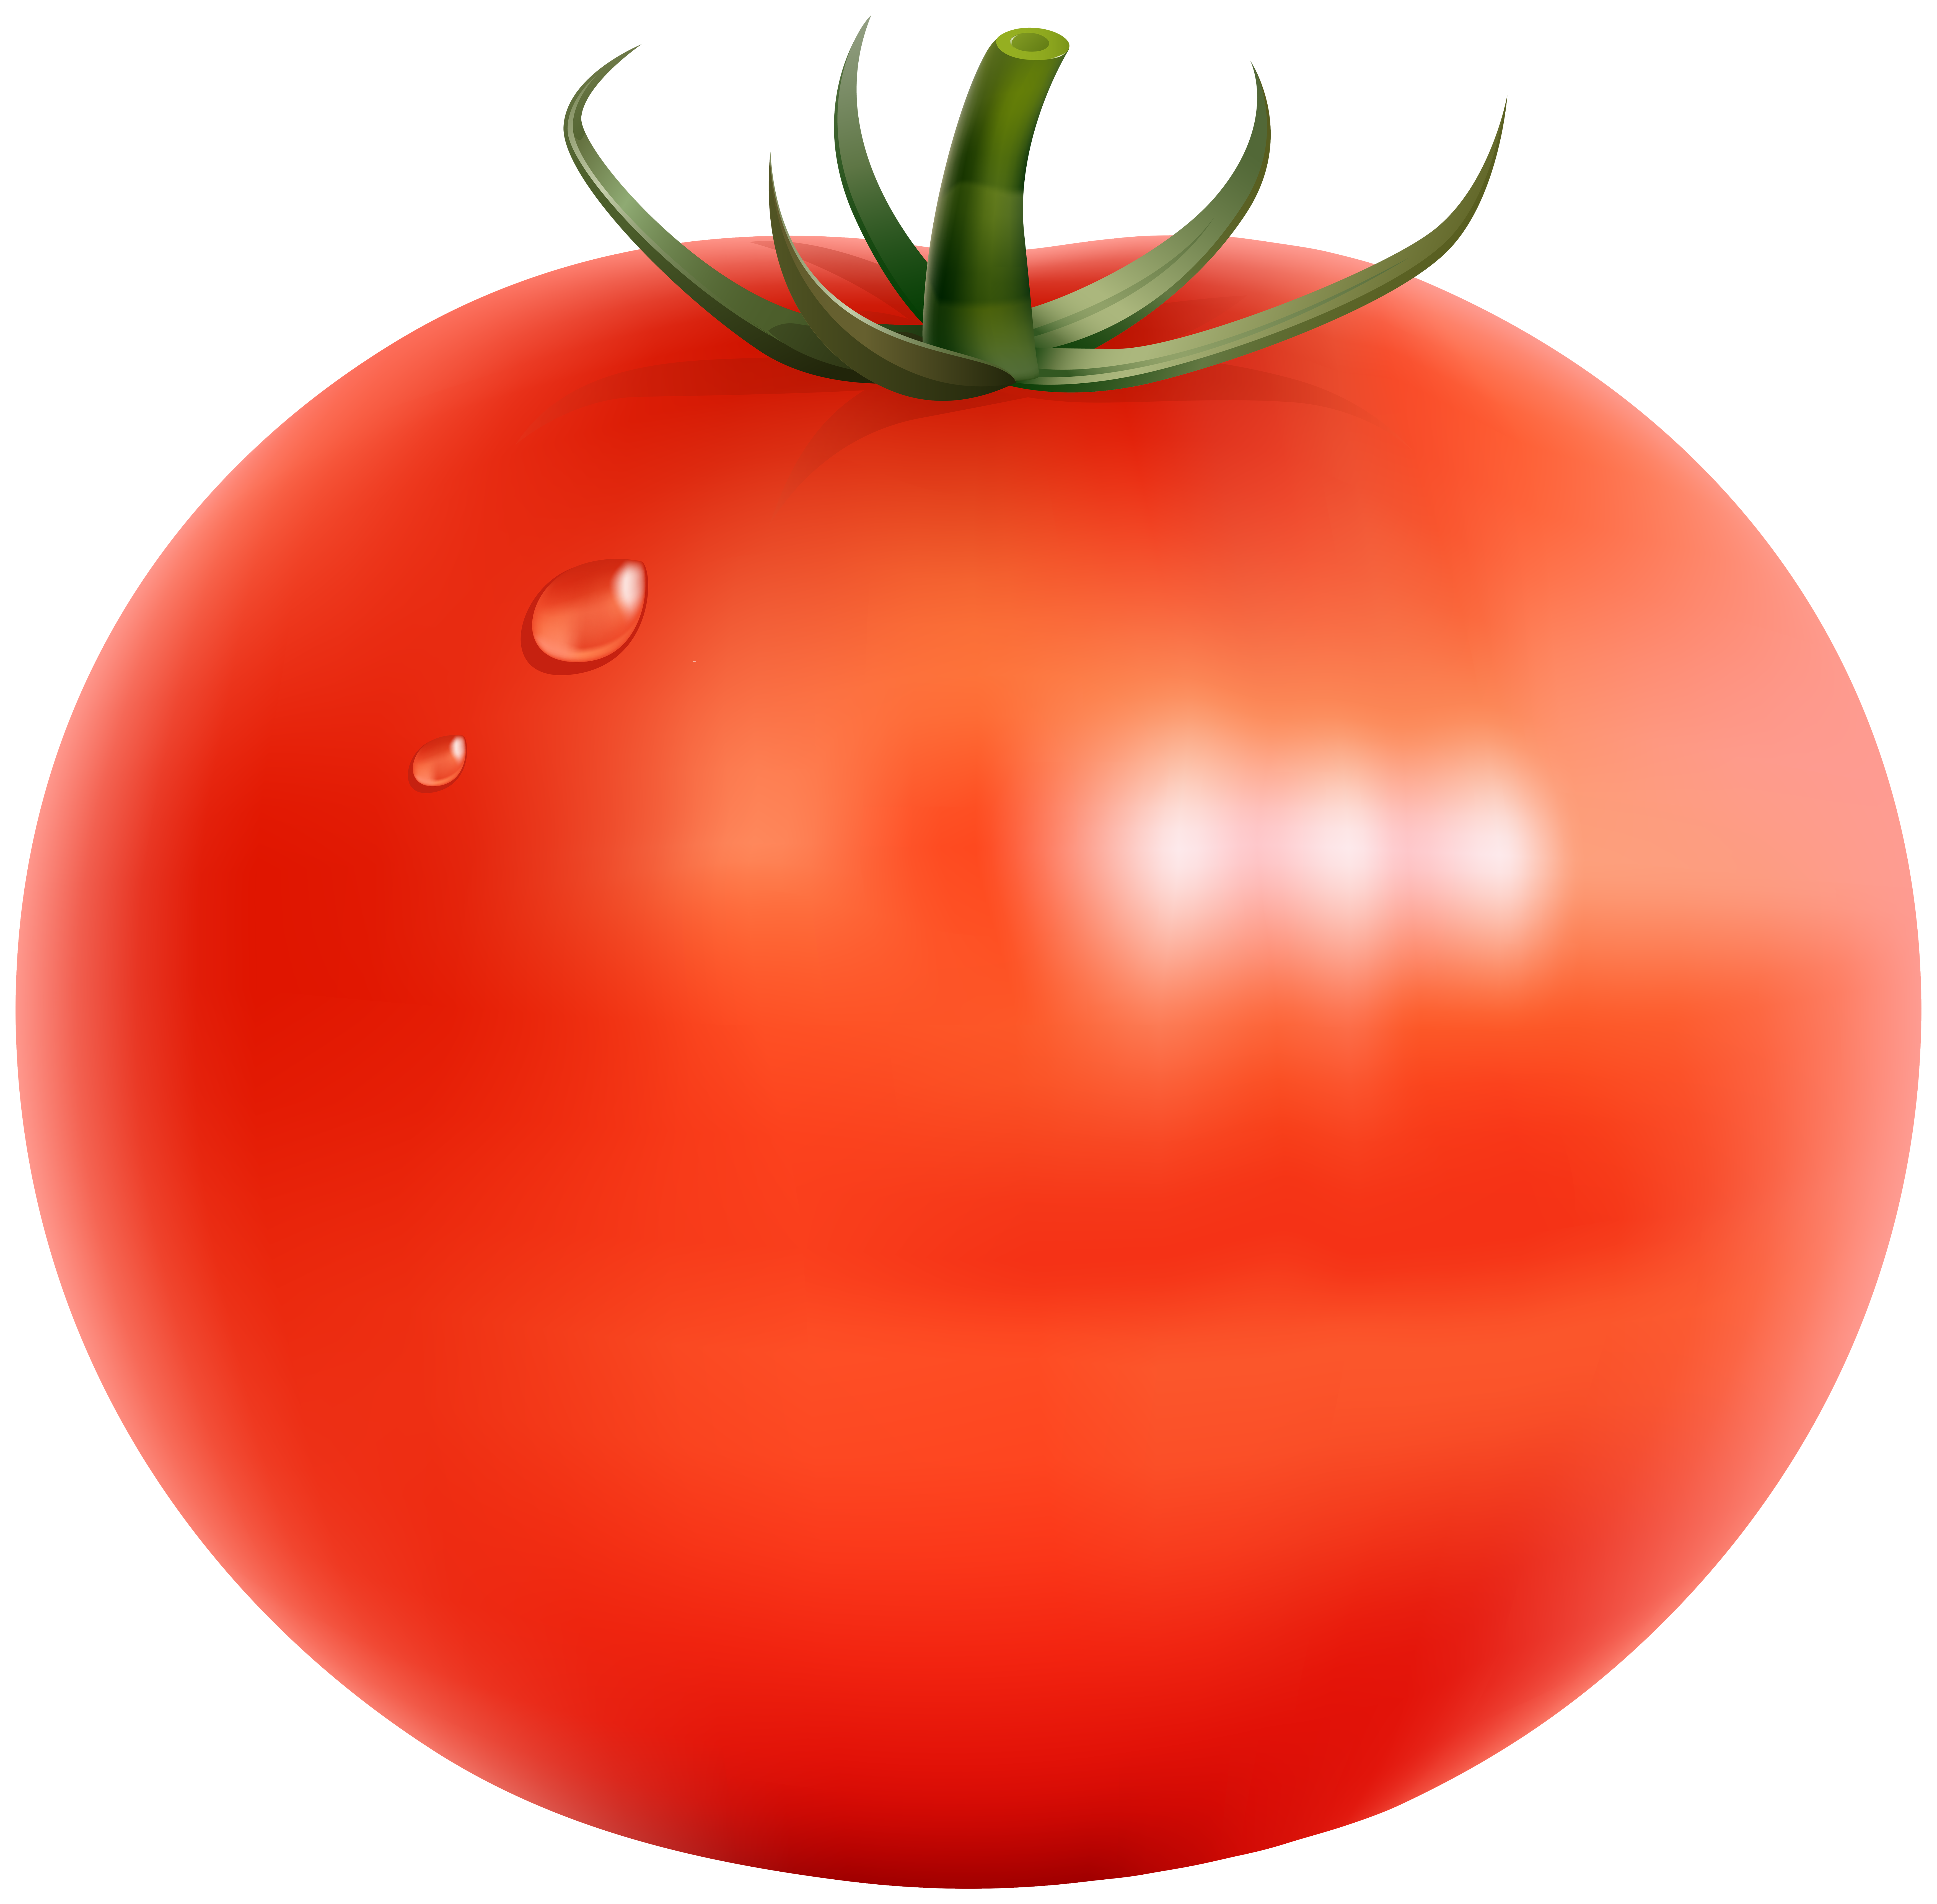 vegetables clipart transparent - Clipground Vector Tomato Png